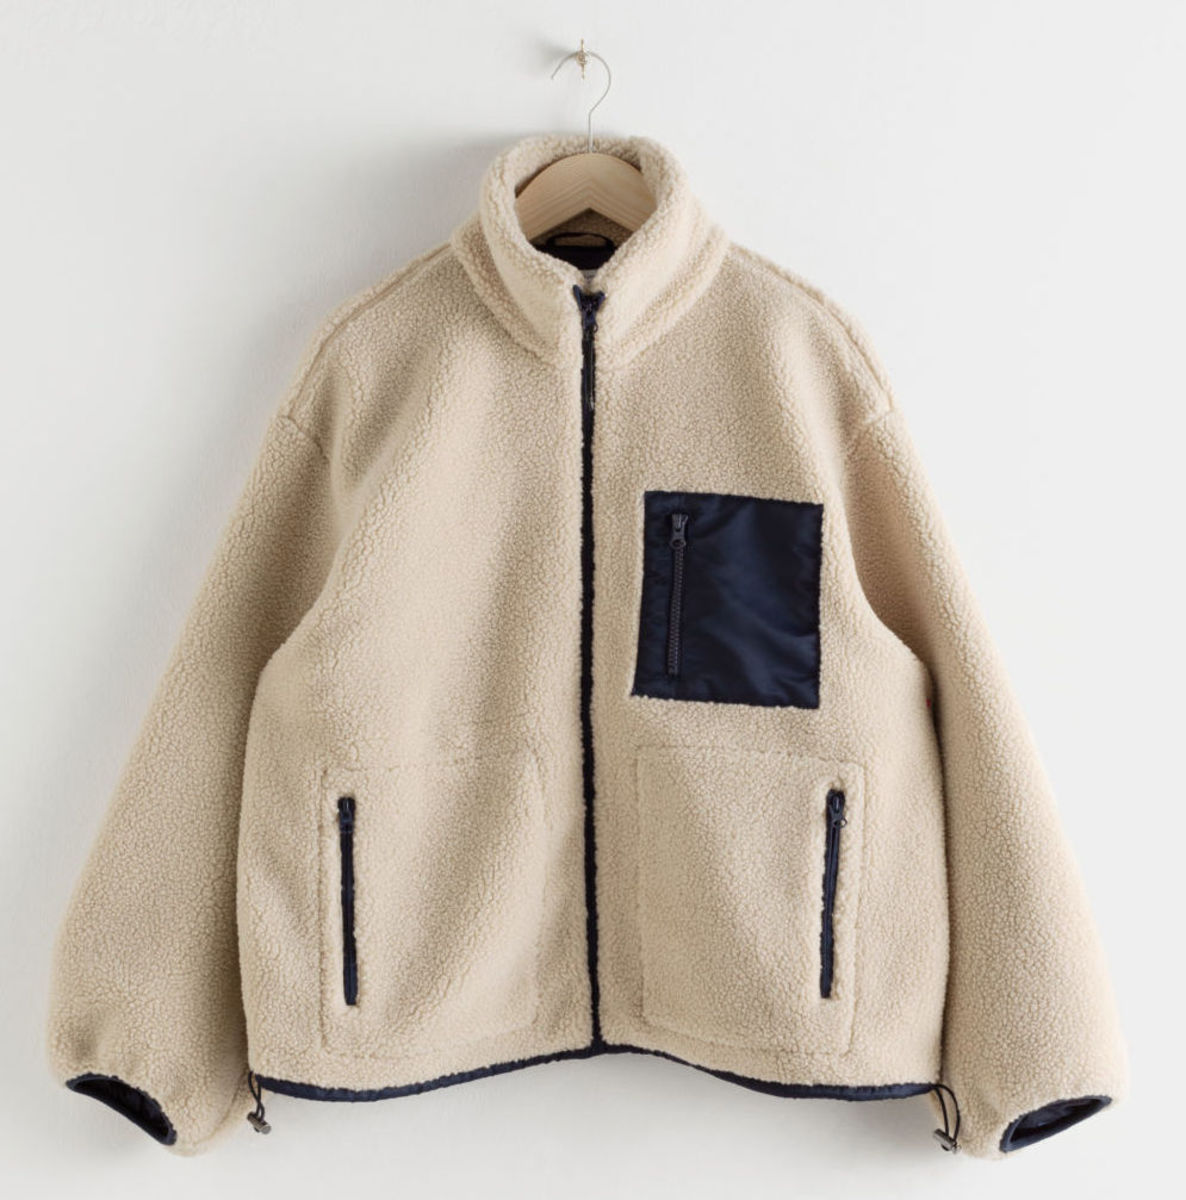 & Other Stories Relaxed Utility Fleece Jacket, $149, available here.